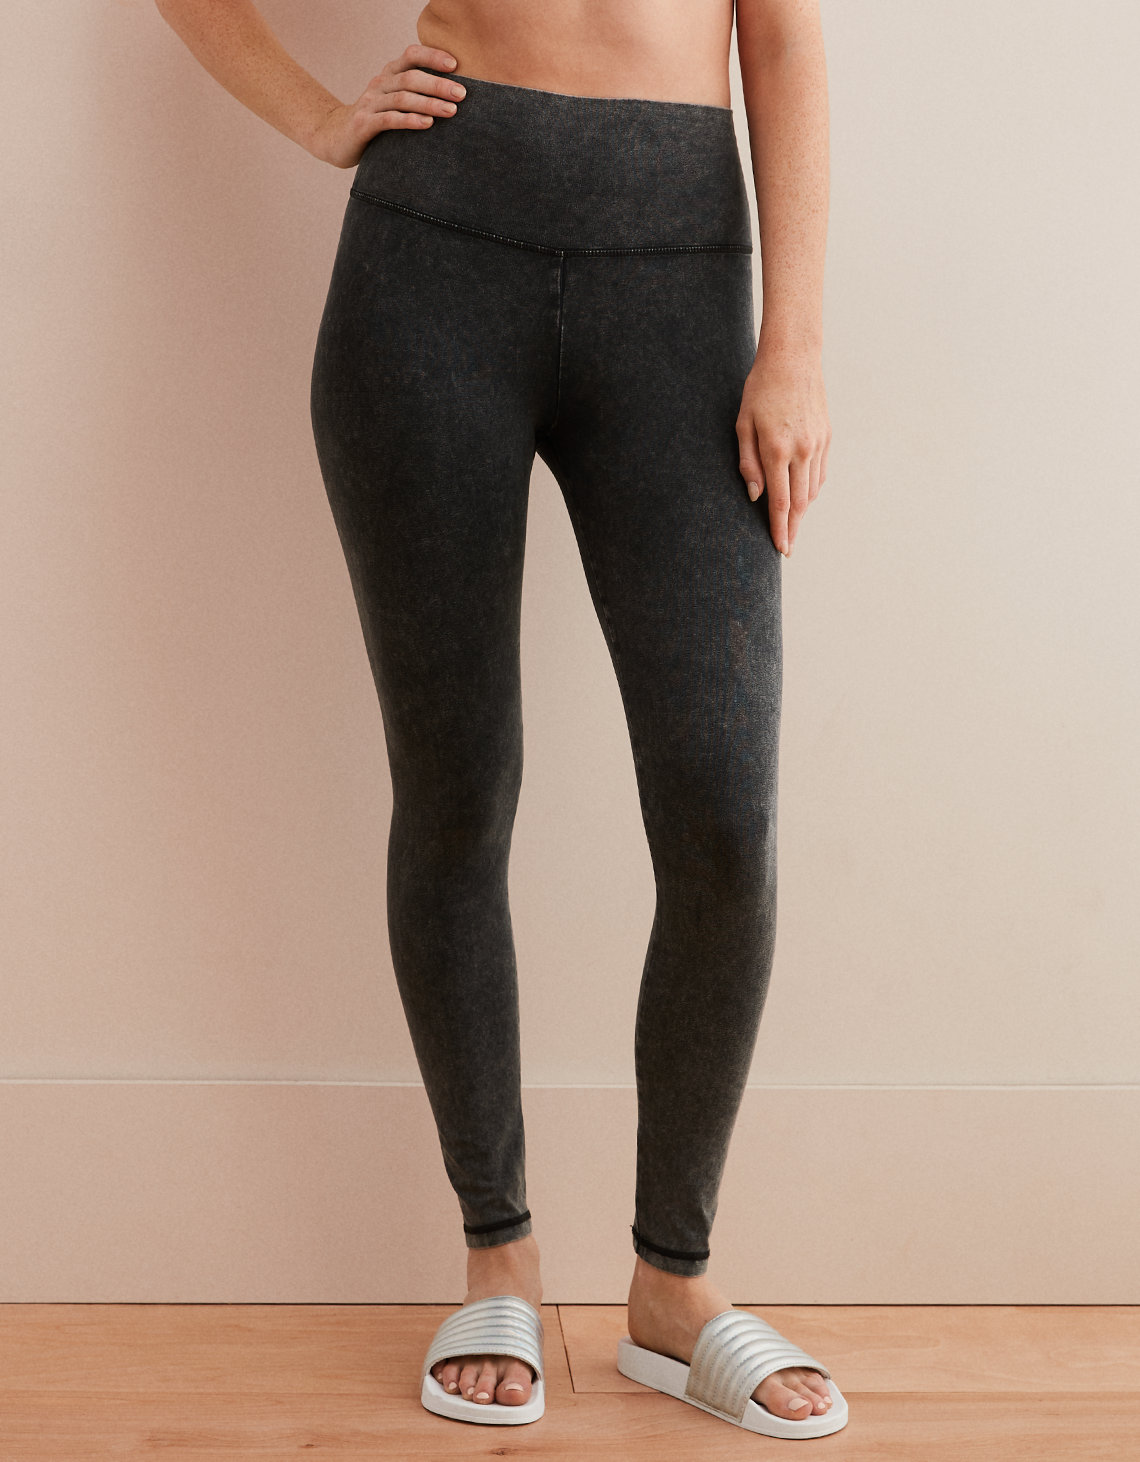 3b6f635ecc7c3 Aerie Chill High Waisted Legging, True Black | Aerie for American Eagle